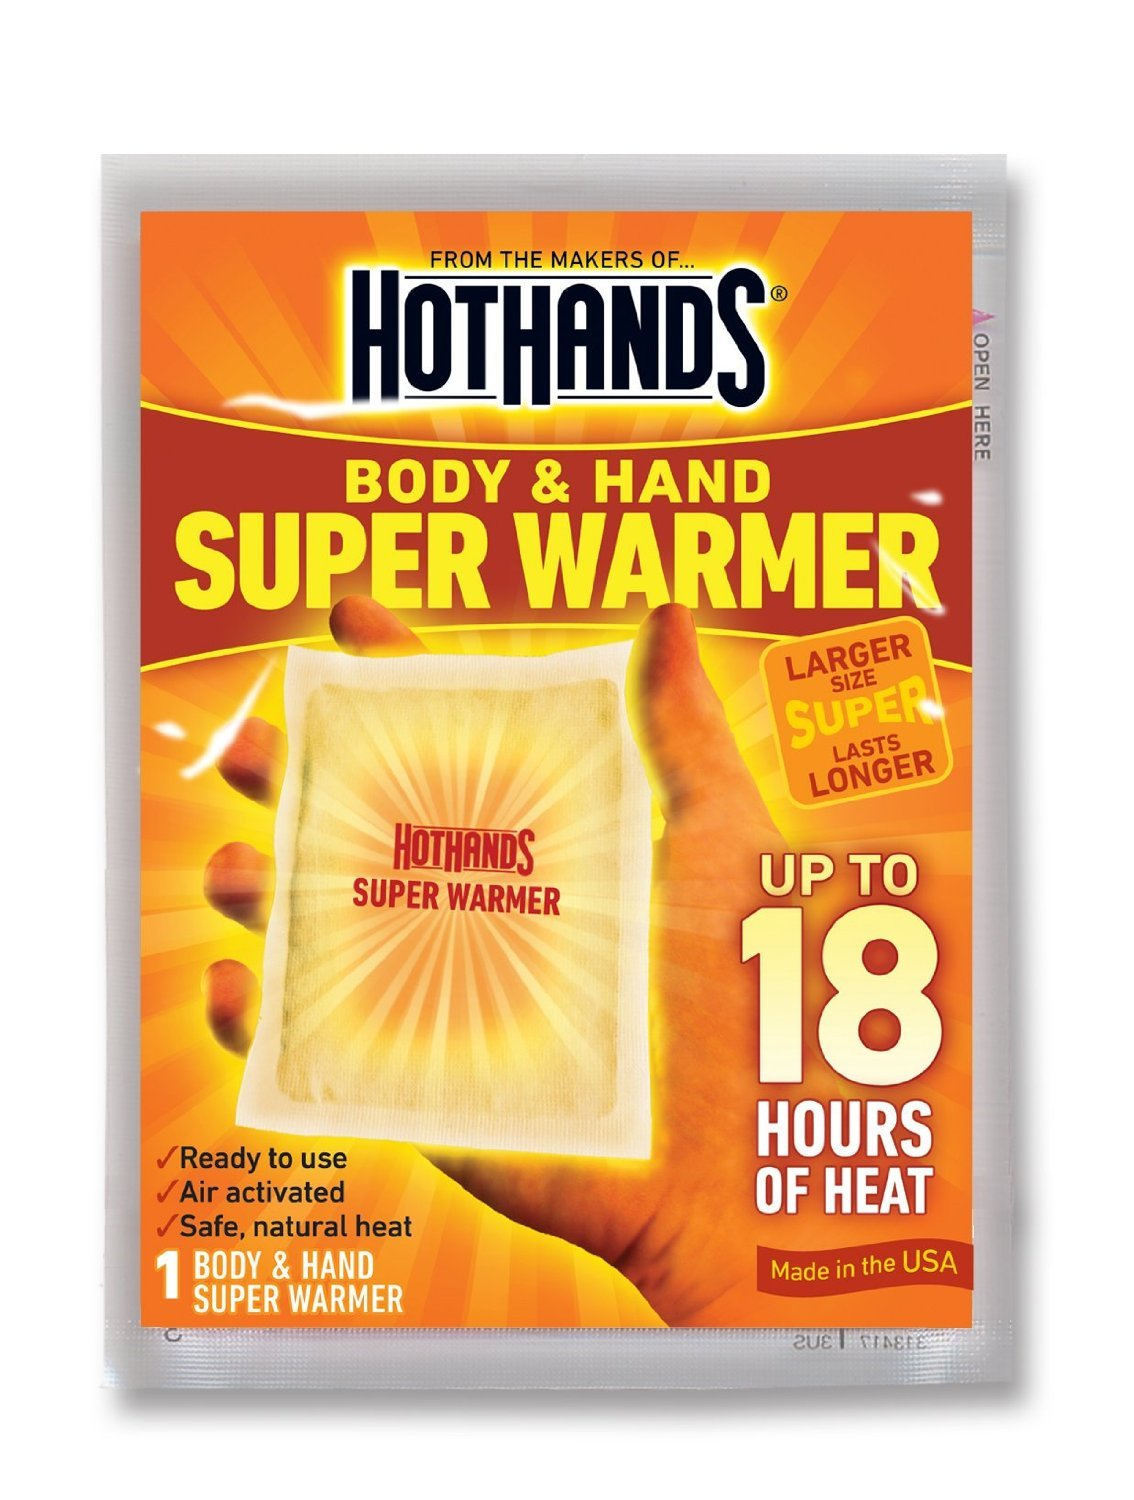 HotHands Body & Hand Super Warmer (100 count) by HotHands (Image #1)